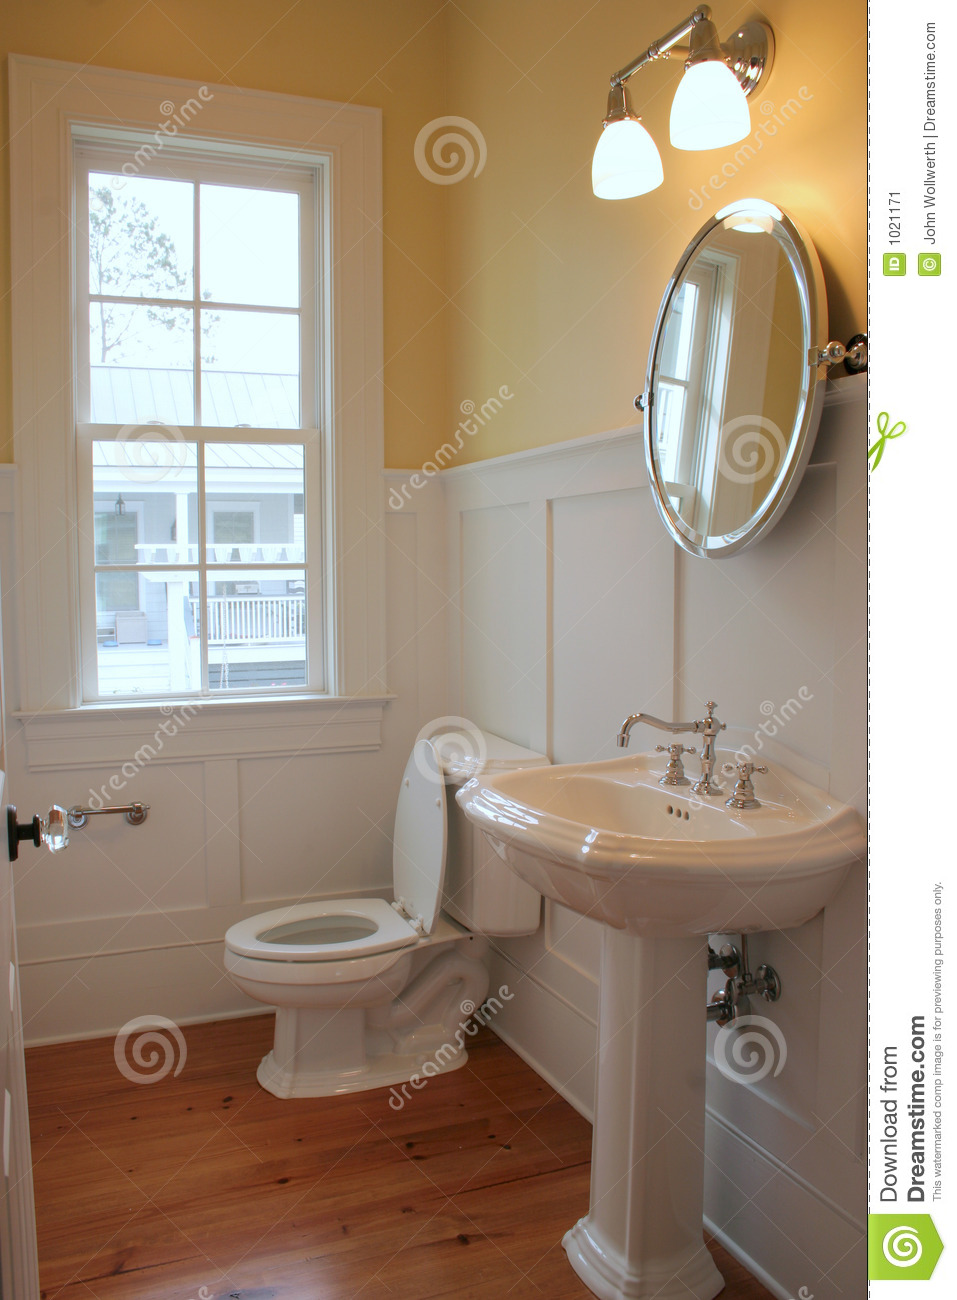 Simple Bathroom Stock Image Image Of Plumbing Home Mirror 1021171